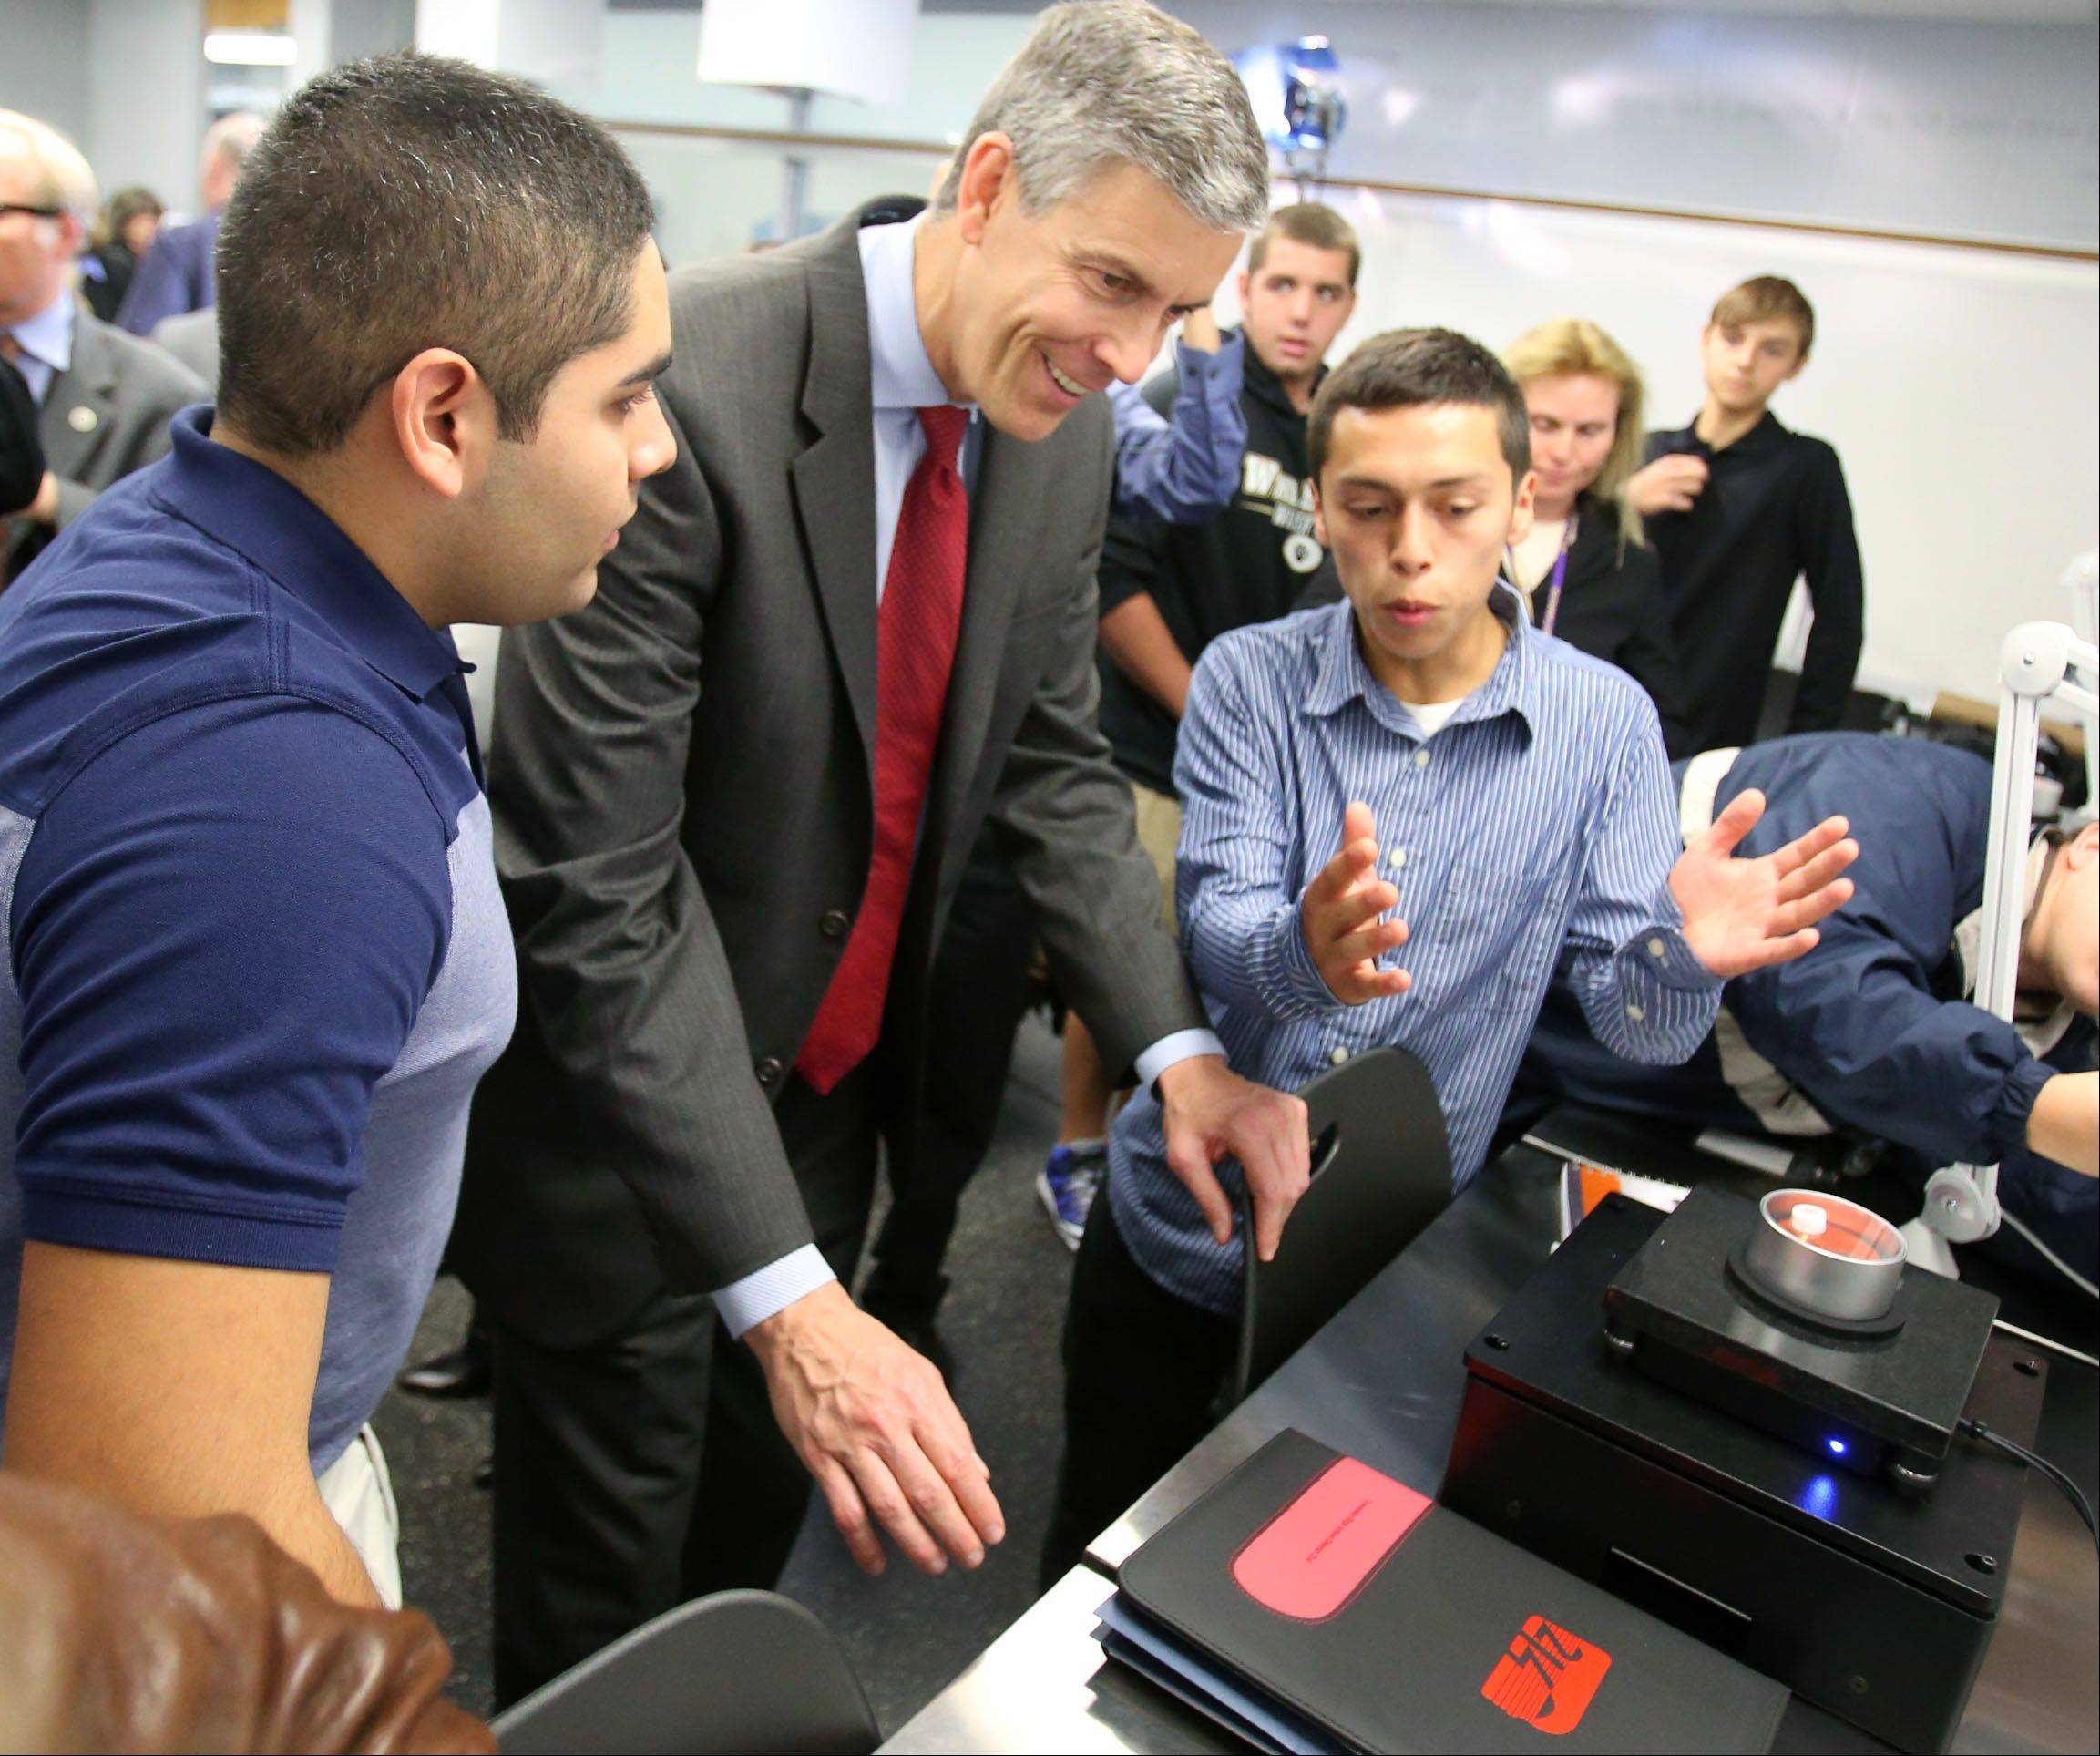 Wheeling High School seniors Alex Lopez, left, and Alfredo Rocha explains nano technology equipment to Secretary of Education Arne Duncan while touring of the school's new nano technology lab in Wheeling on Thursday.